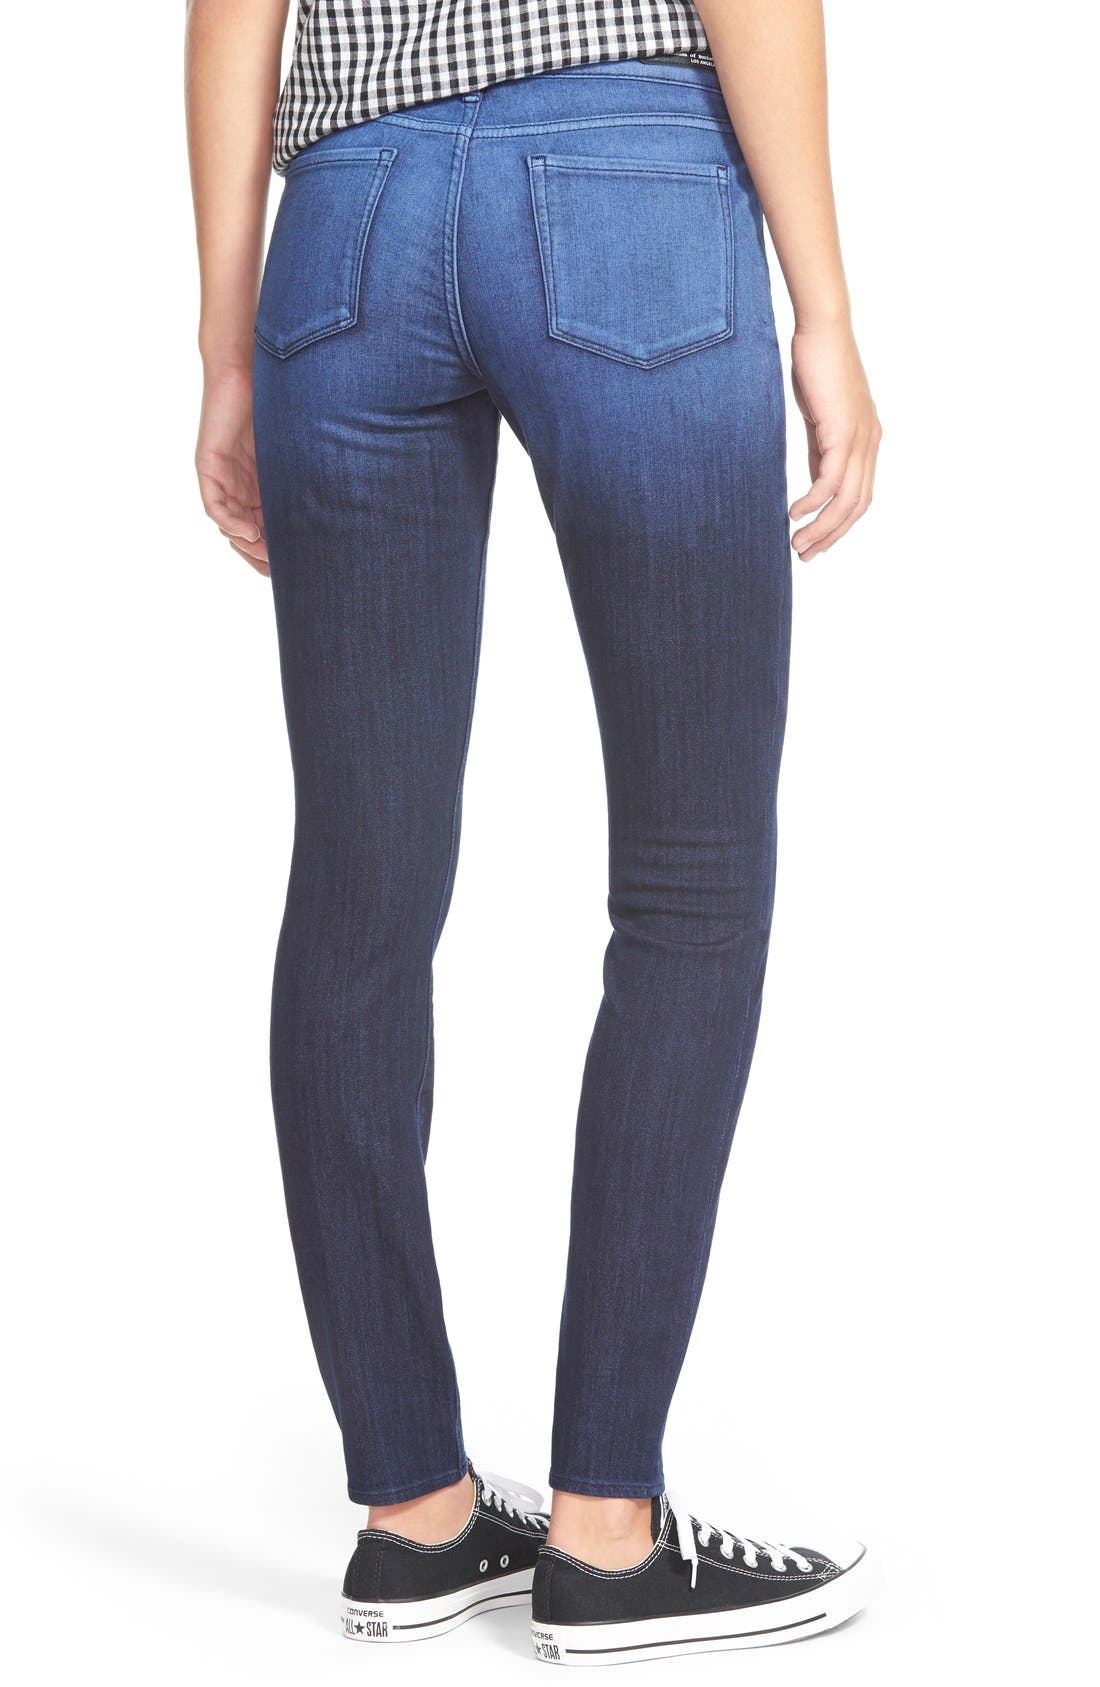 Alternate Image 2  - Articles of Society Red Label 'SoHo' Skinny Jeans (Broadwick)